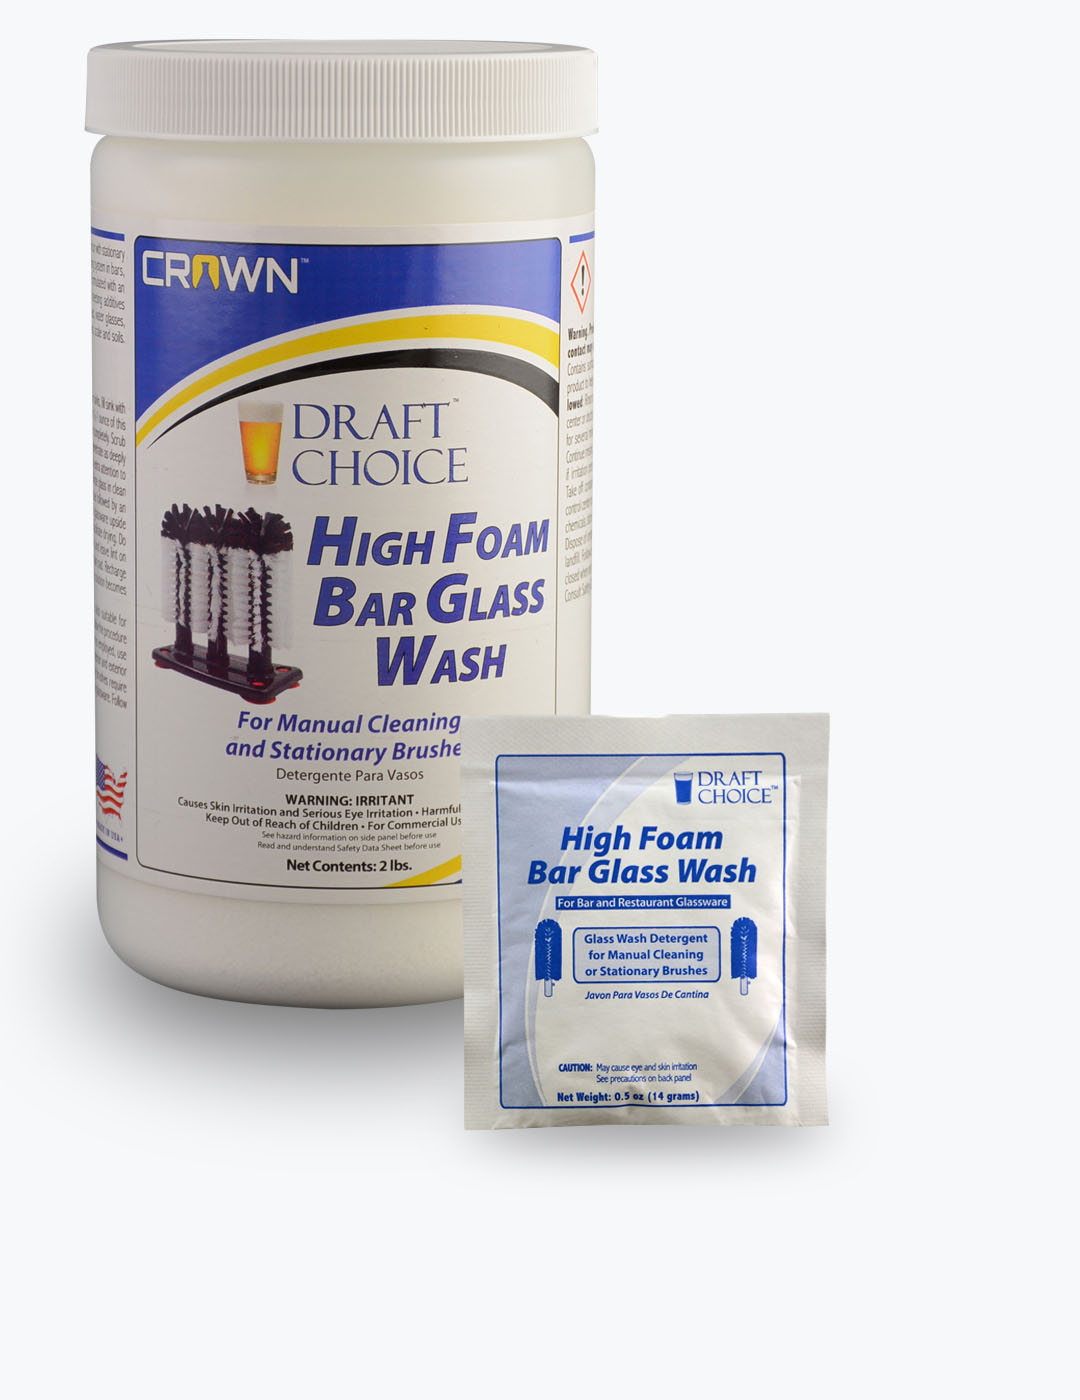 High Foam Bar Glass Wash